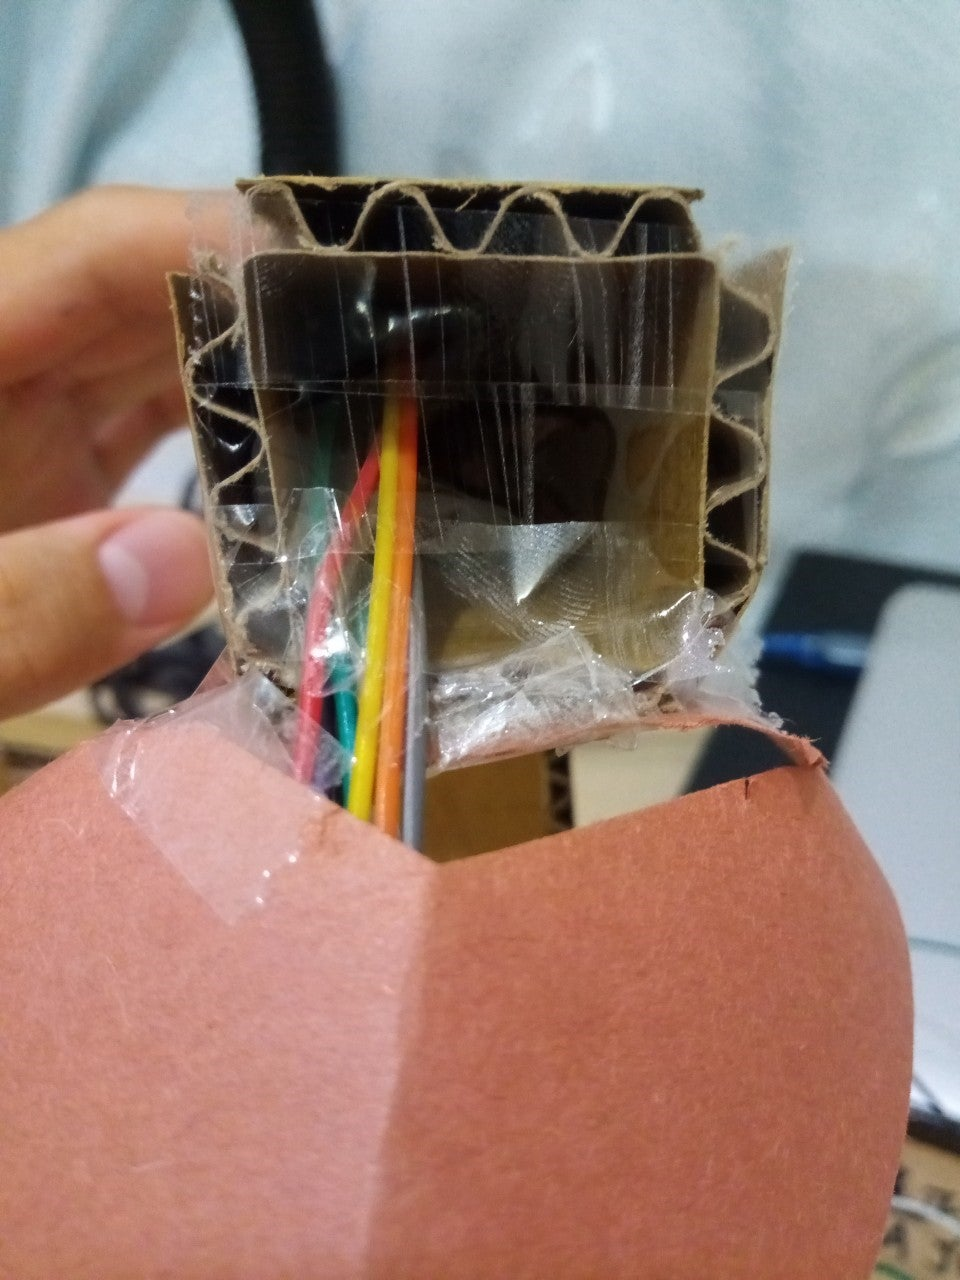 Making the Lamp's Exterior Part 2: Cutting the Lamp's Main Structure